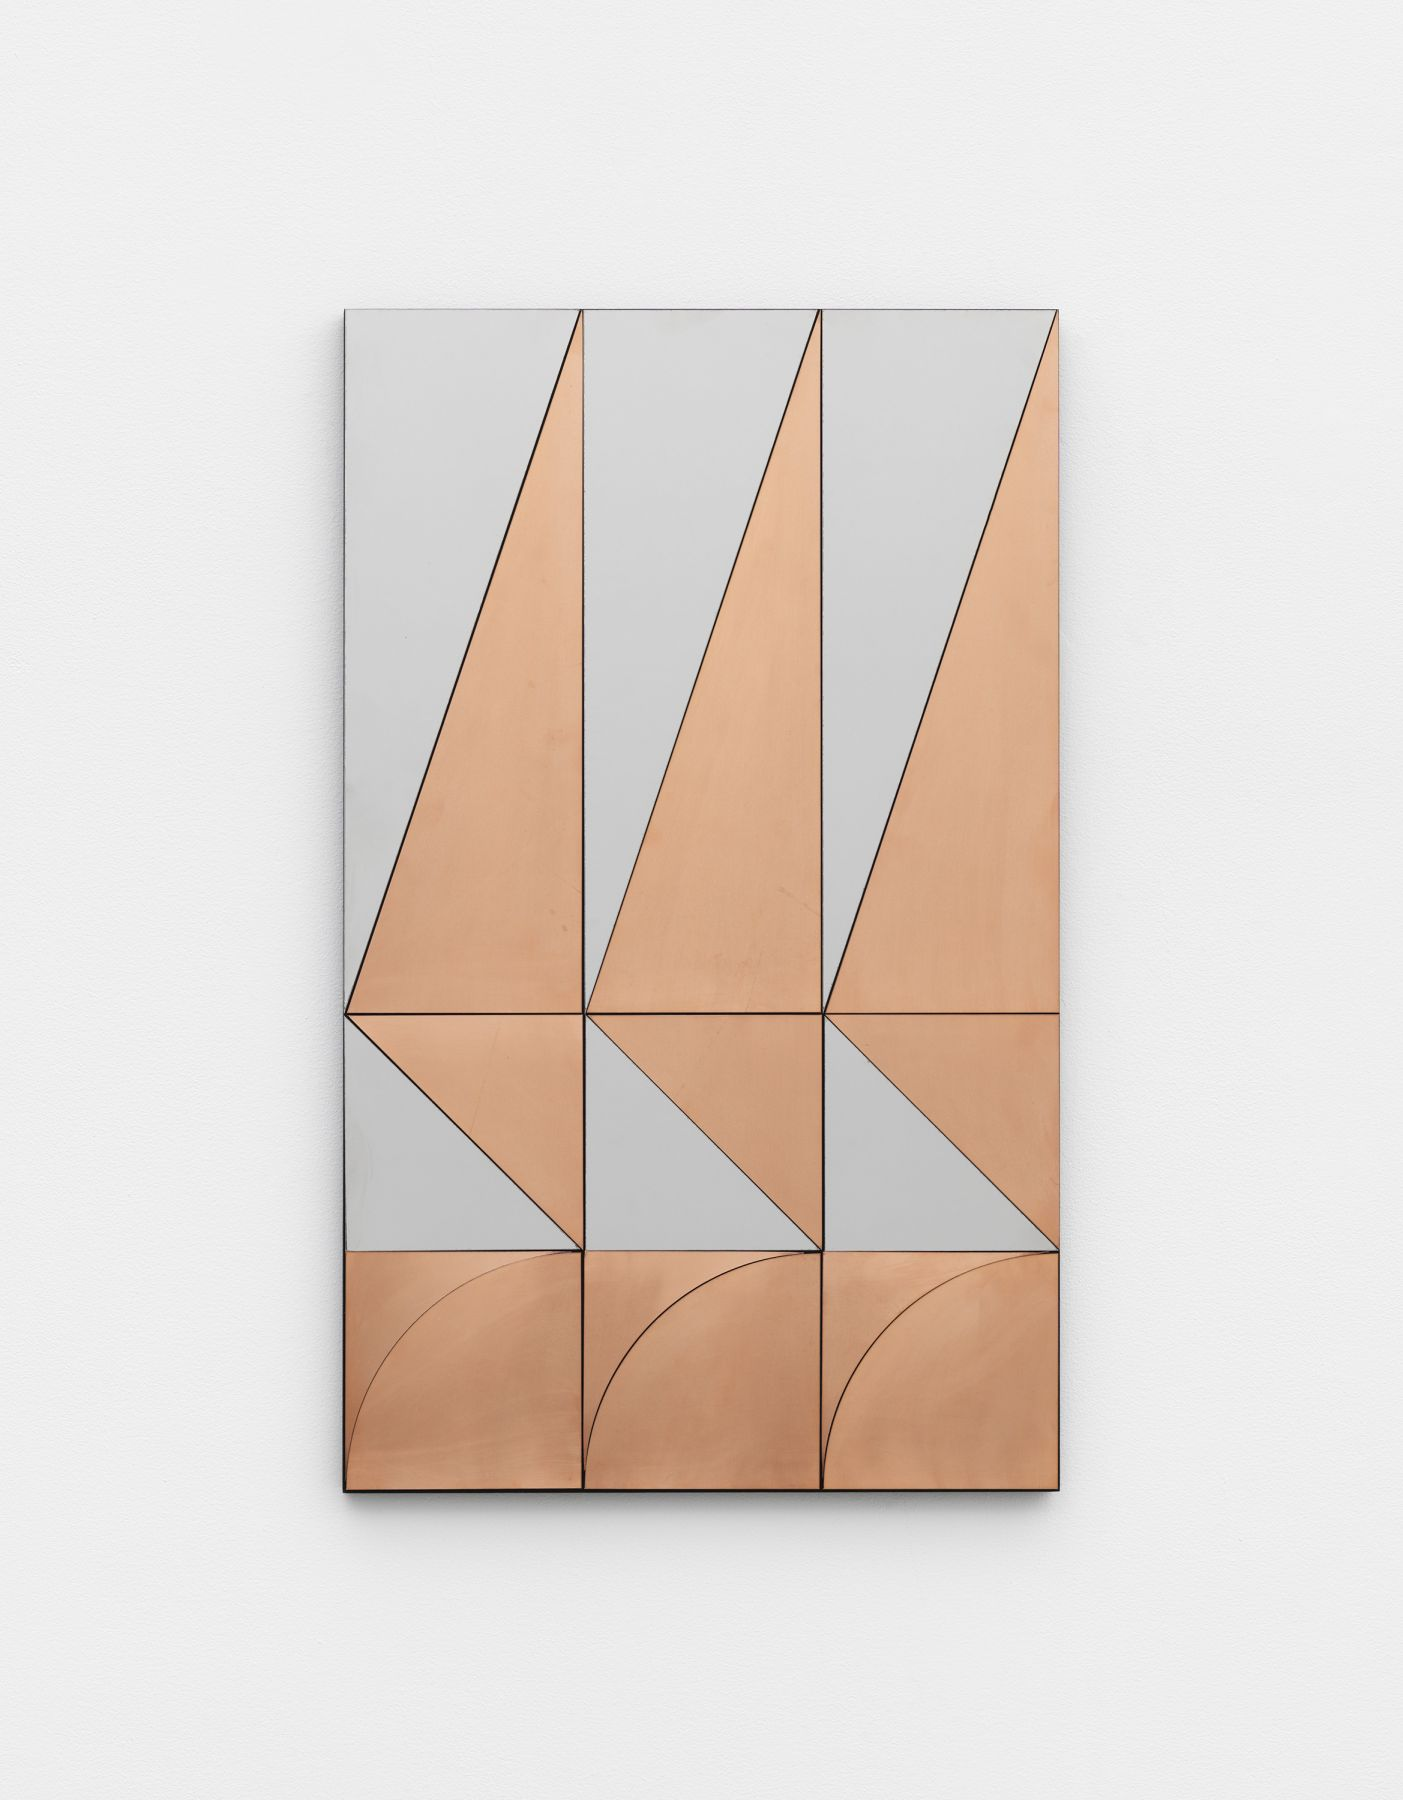 Untitled, 2017 Copper and mirror-polished stainless steel on MDF